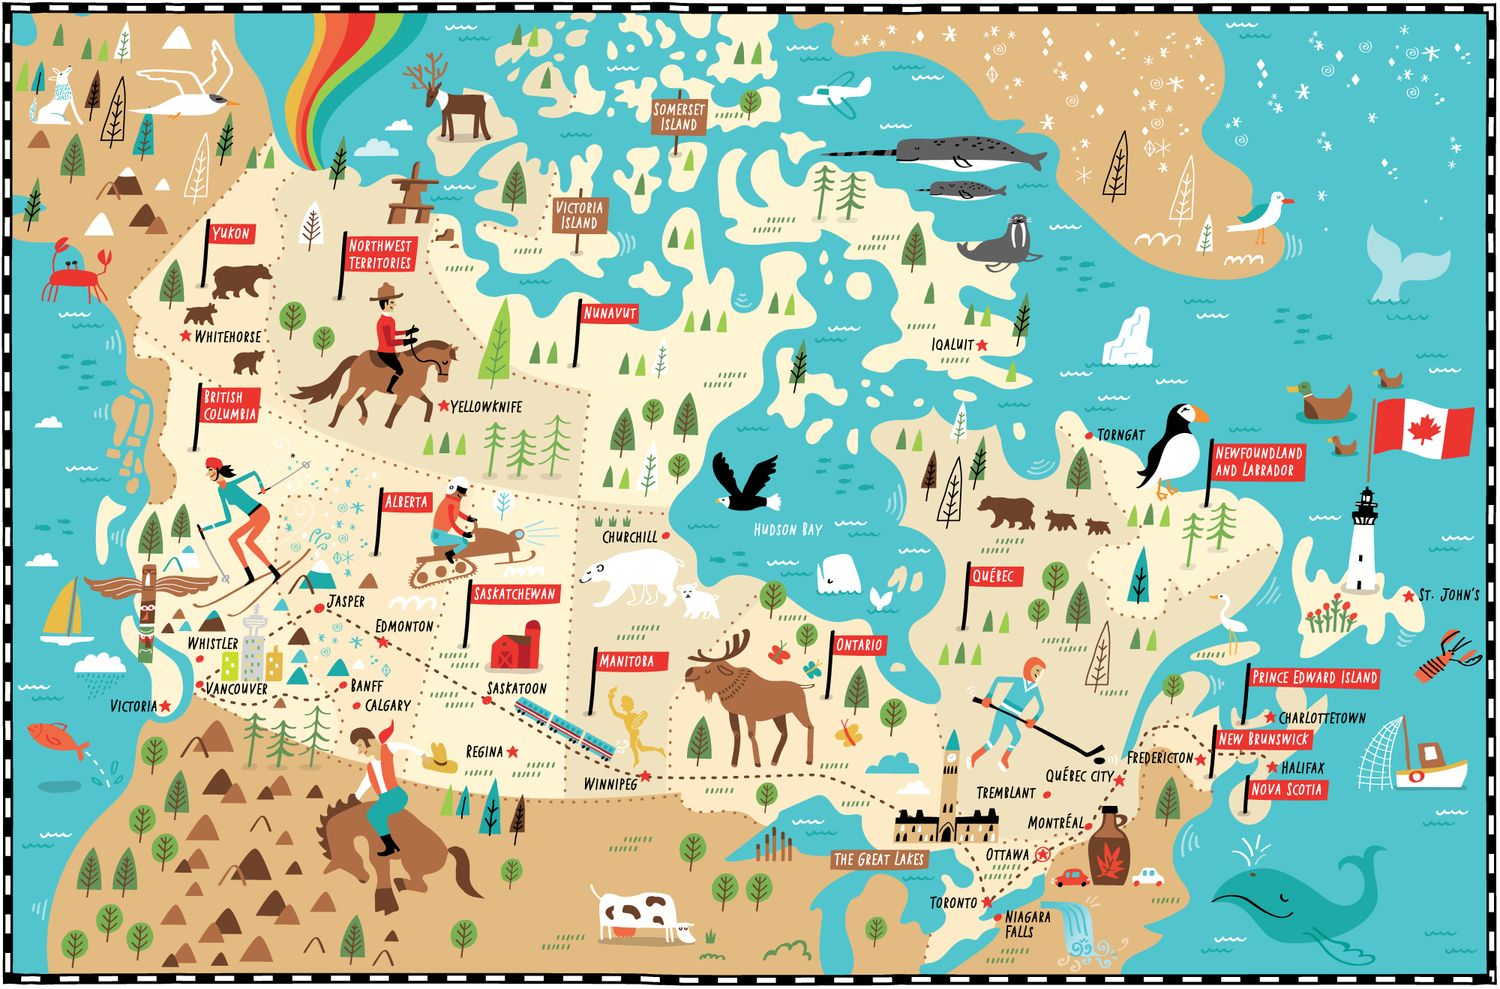 Map Of Canada Halifax.Canada Illustrated Map By Nate Padavick Www Idrawmaps Com Maps